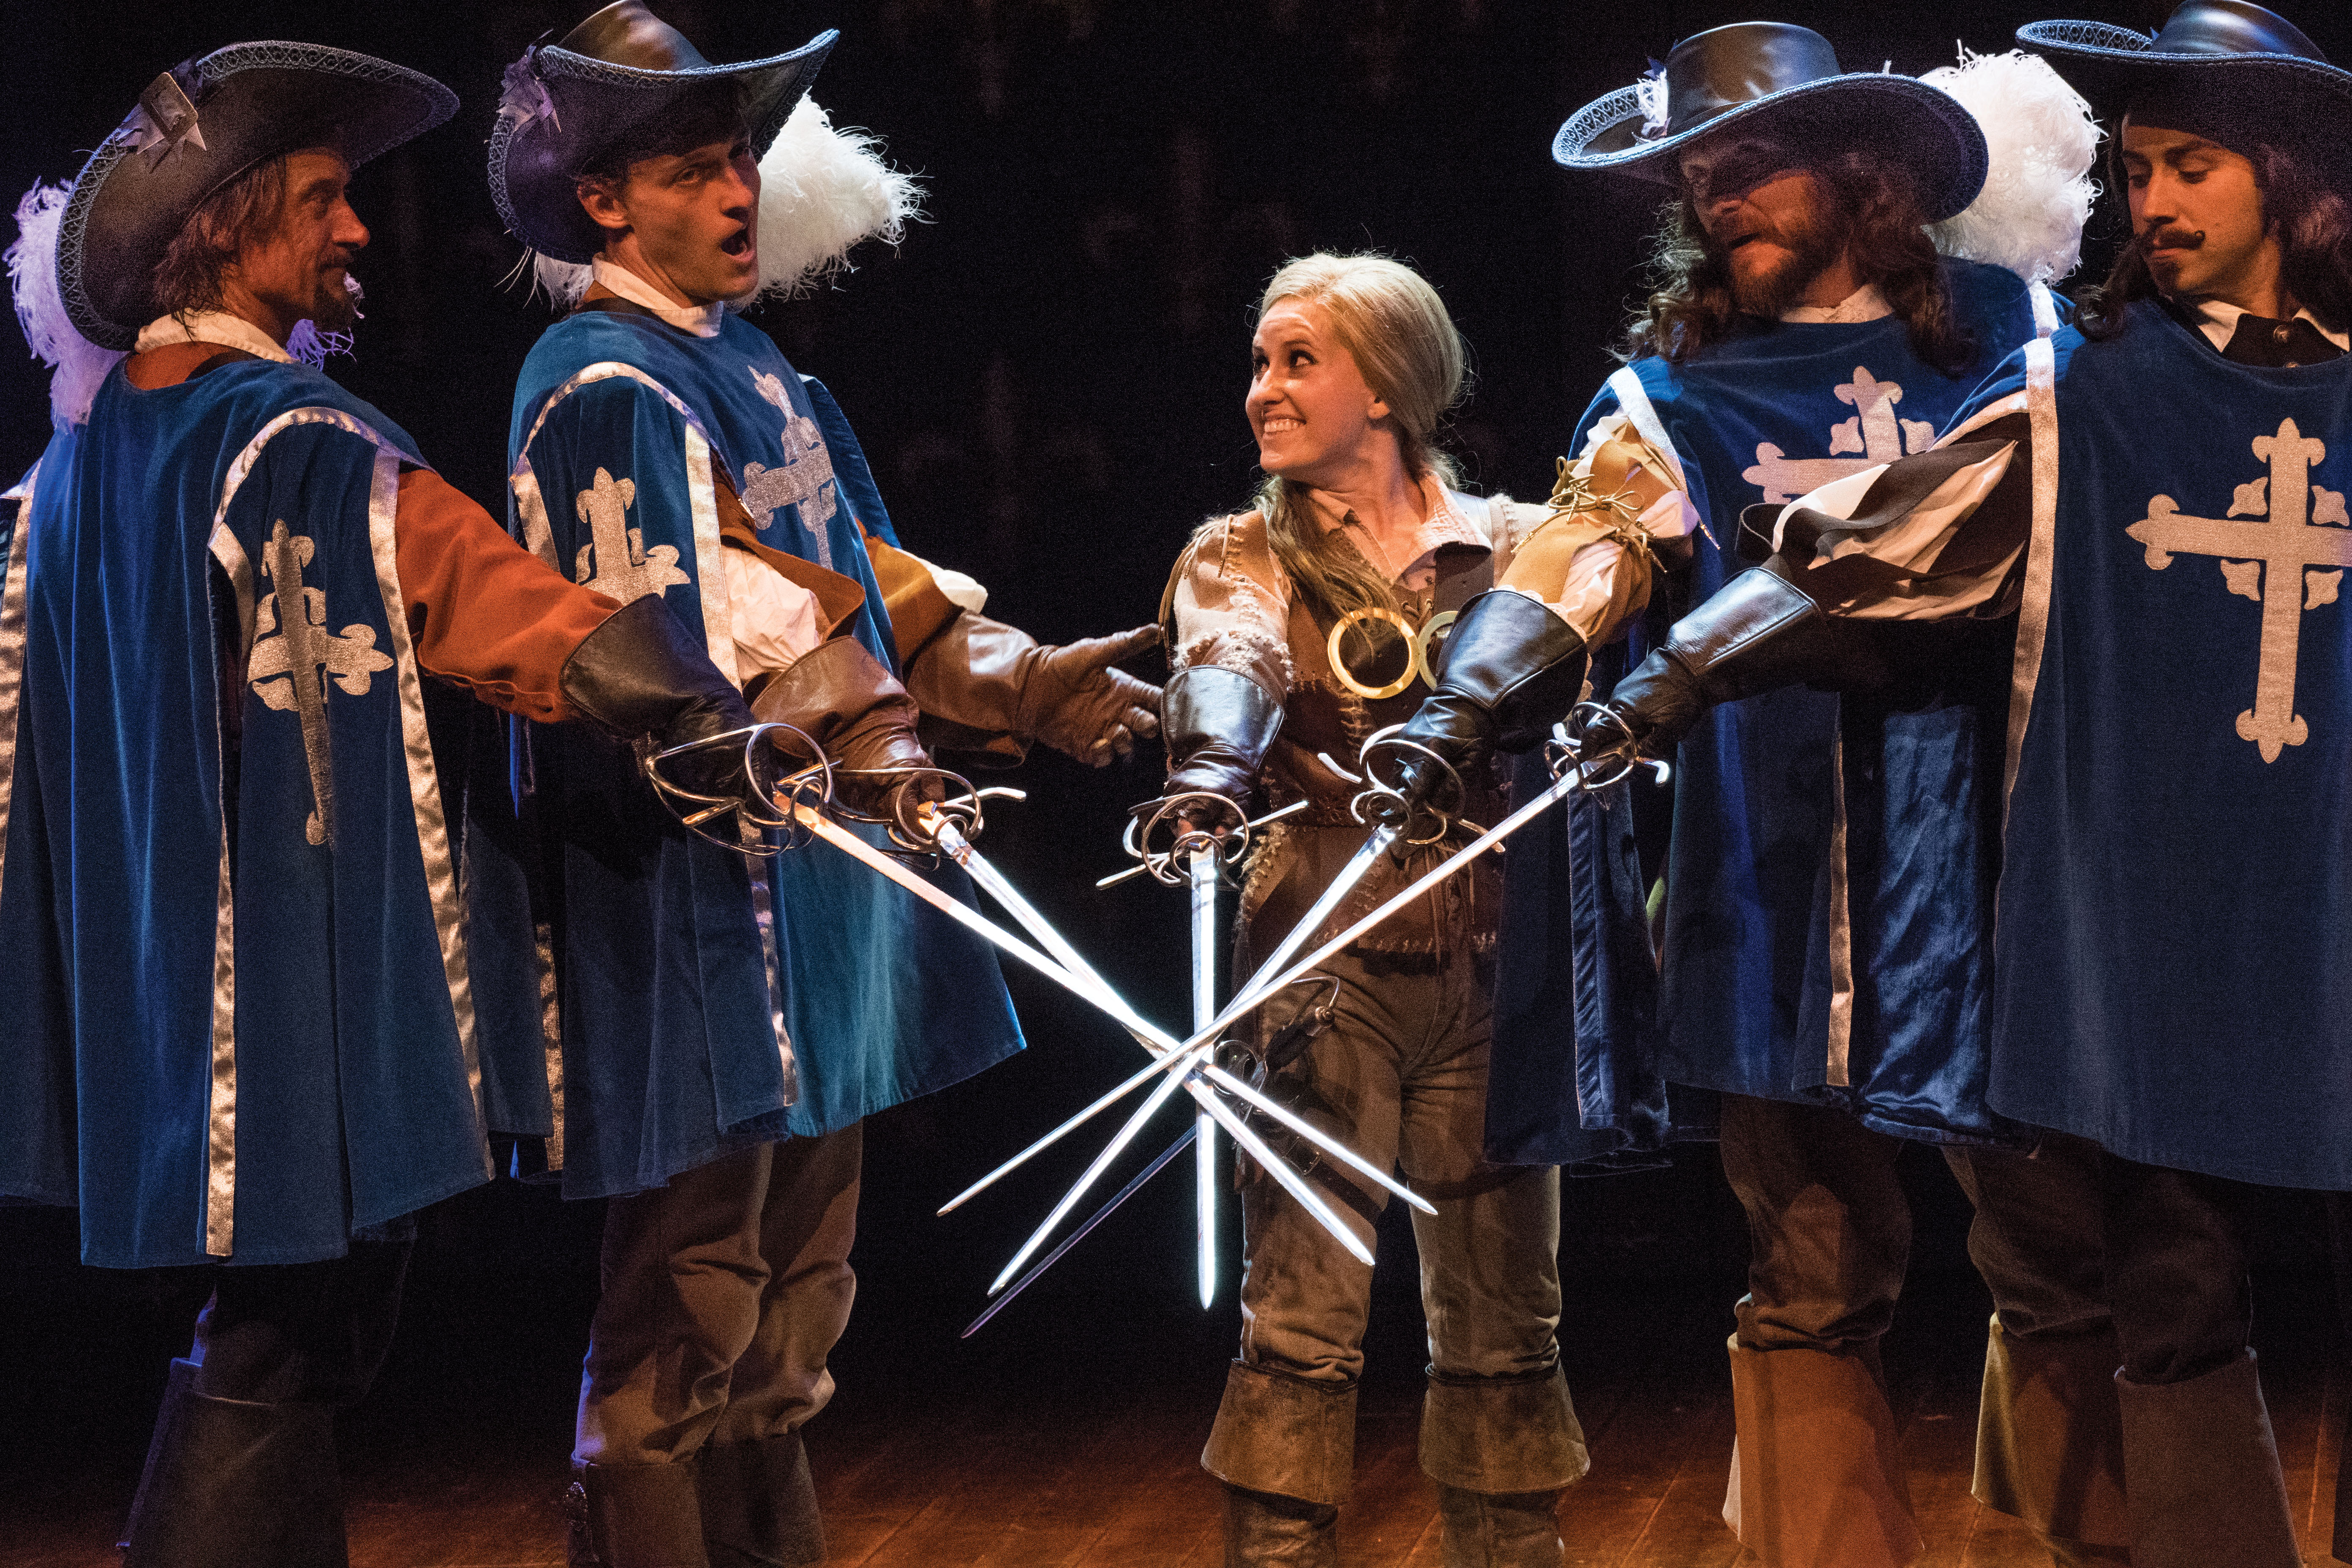 The Musketeers and Sabine